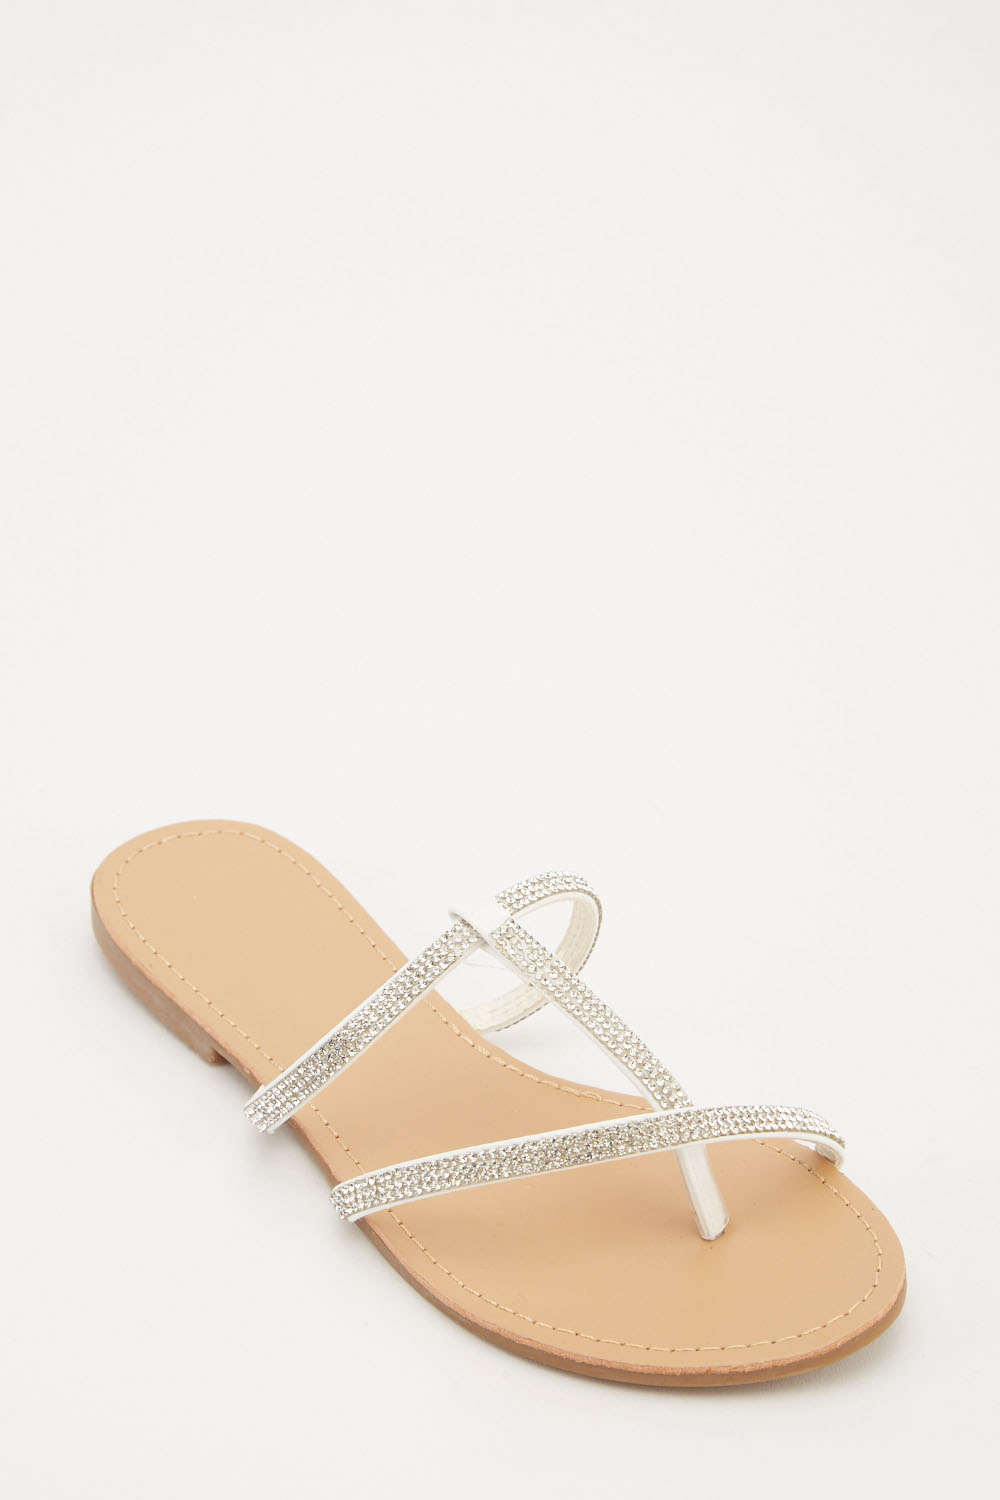 86455e9f1 Encrusted Strappy Flat Sandals - 4 Colours - Just £5